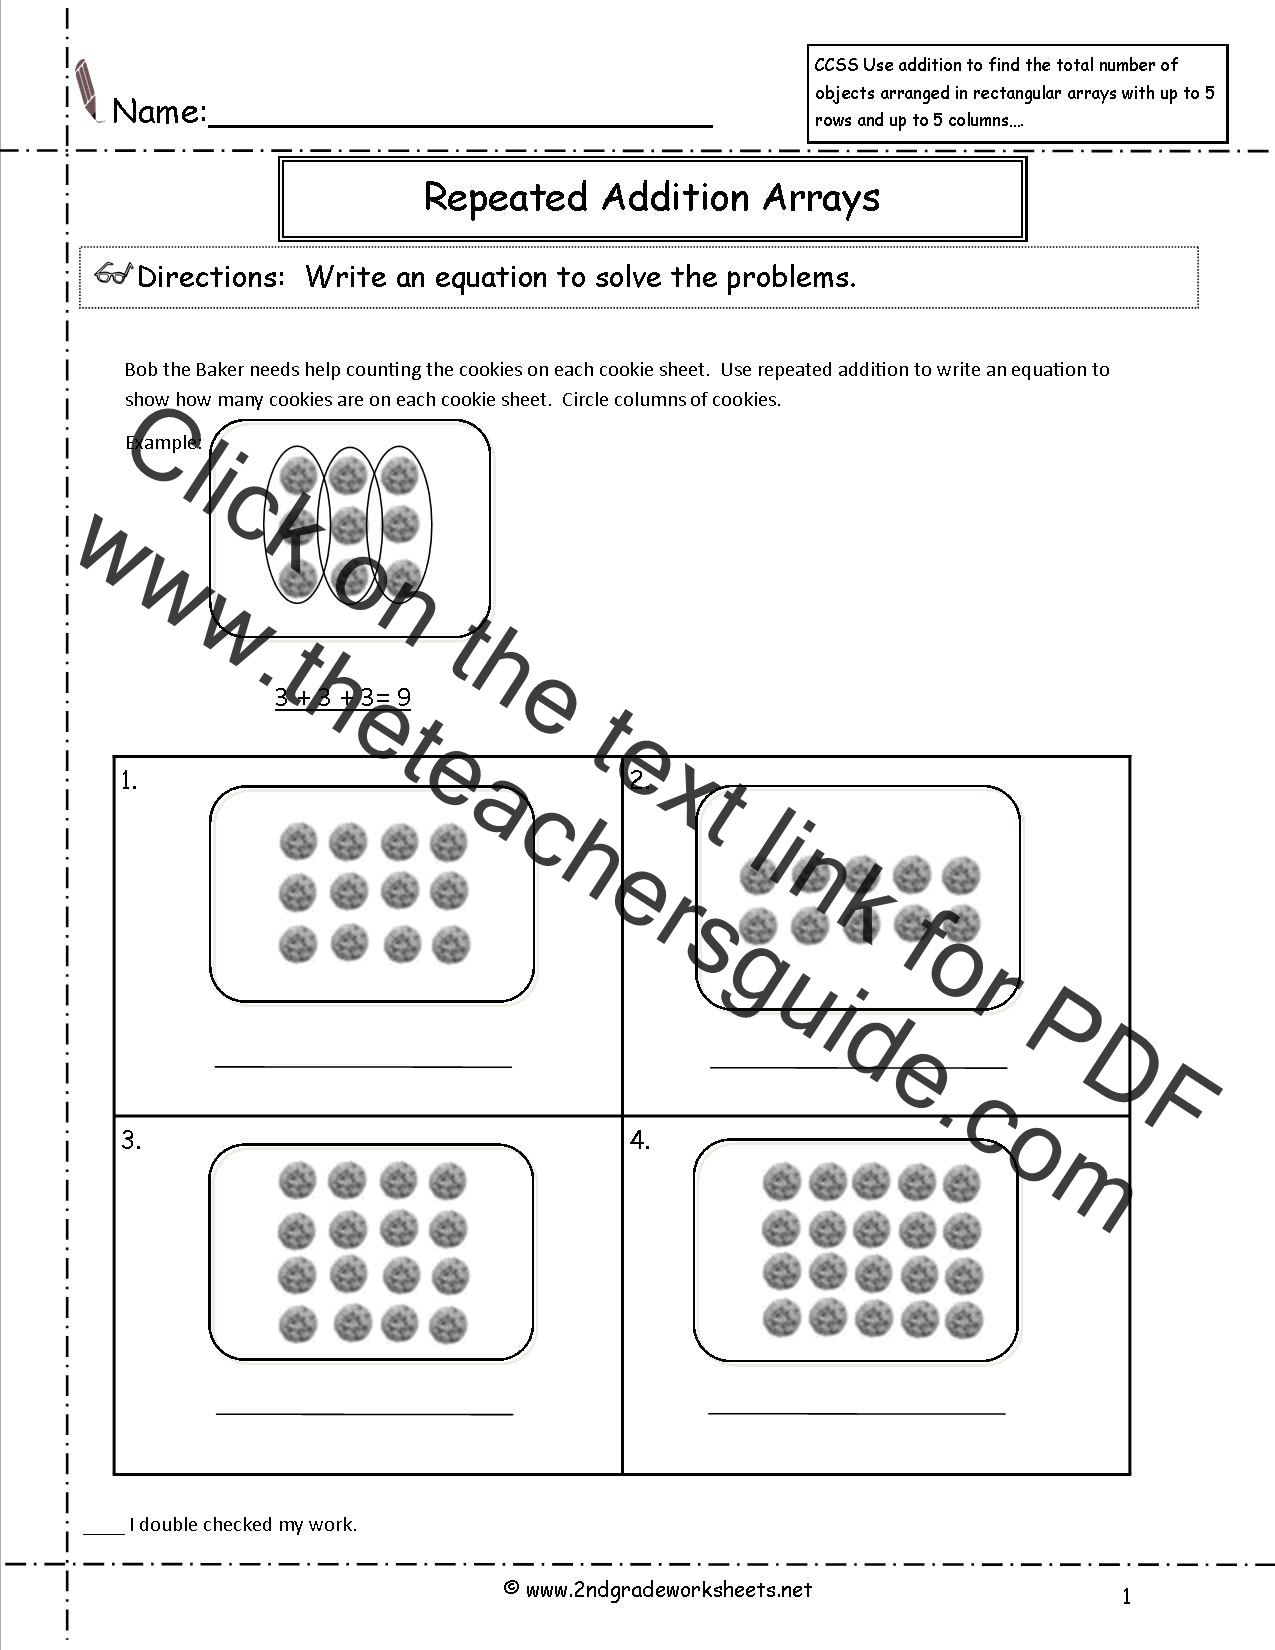 Worksheets Repeated Addition Worksheets 3rd Grade ccss 2 oa 4 worksheets repeated addition arrays